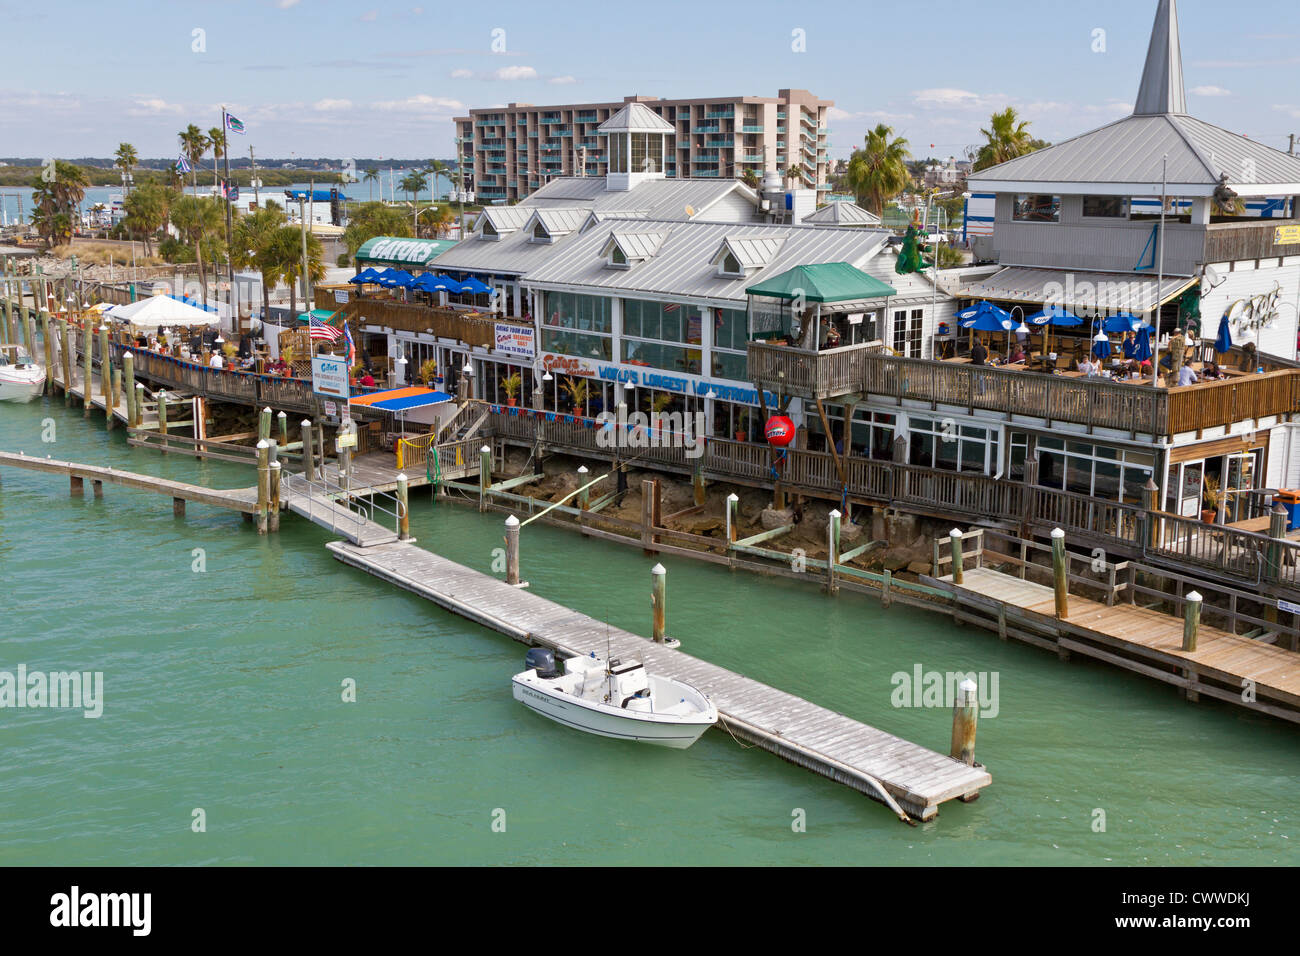 Shops And Restaurants On The Treasure Island Side Of Johns Pass On